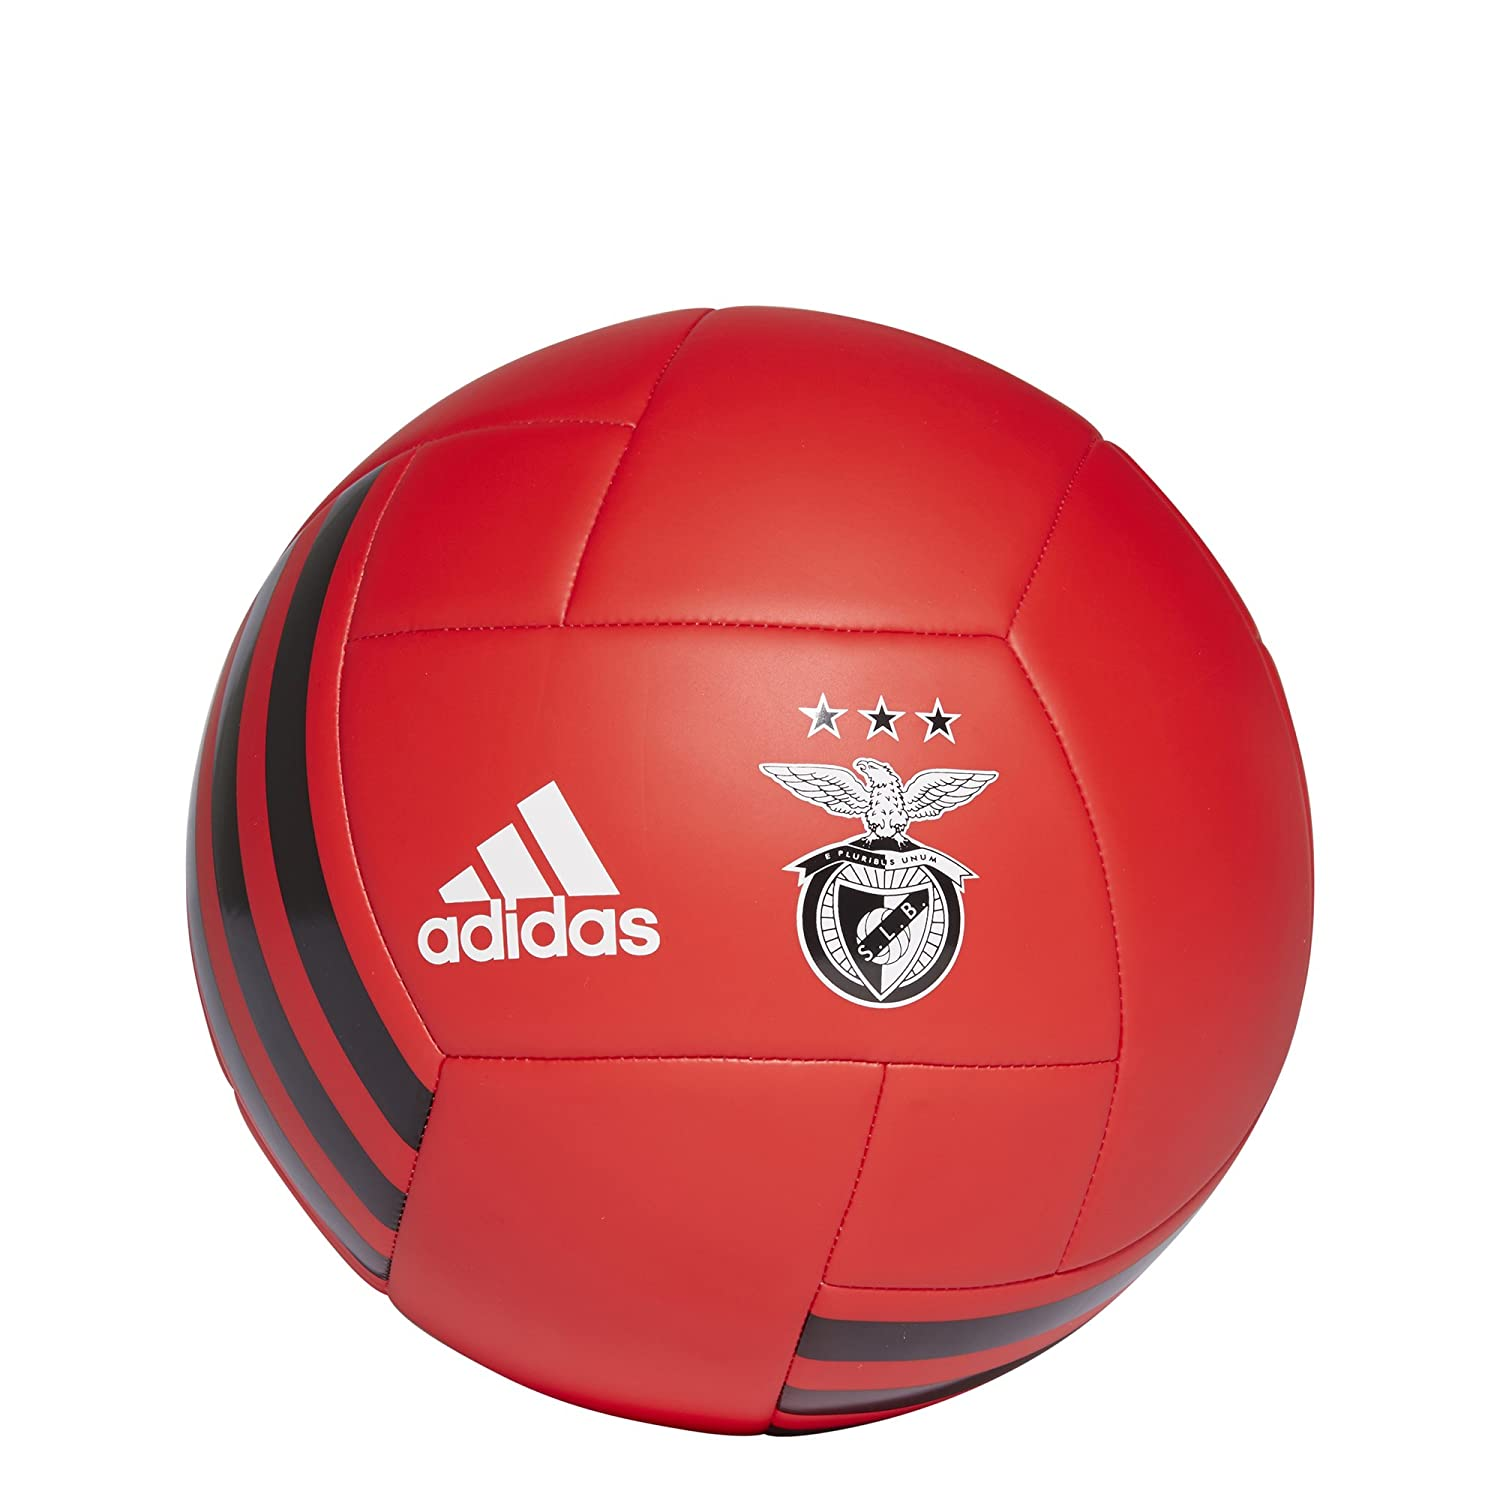 adidas 2018-2019 Benfica Supporters Football (Red) ADIL0|#adidas DT3955